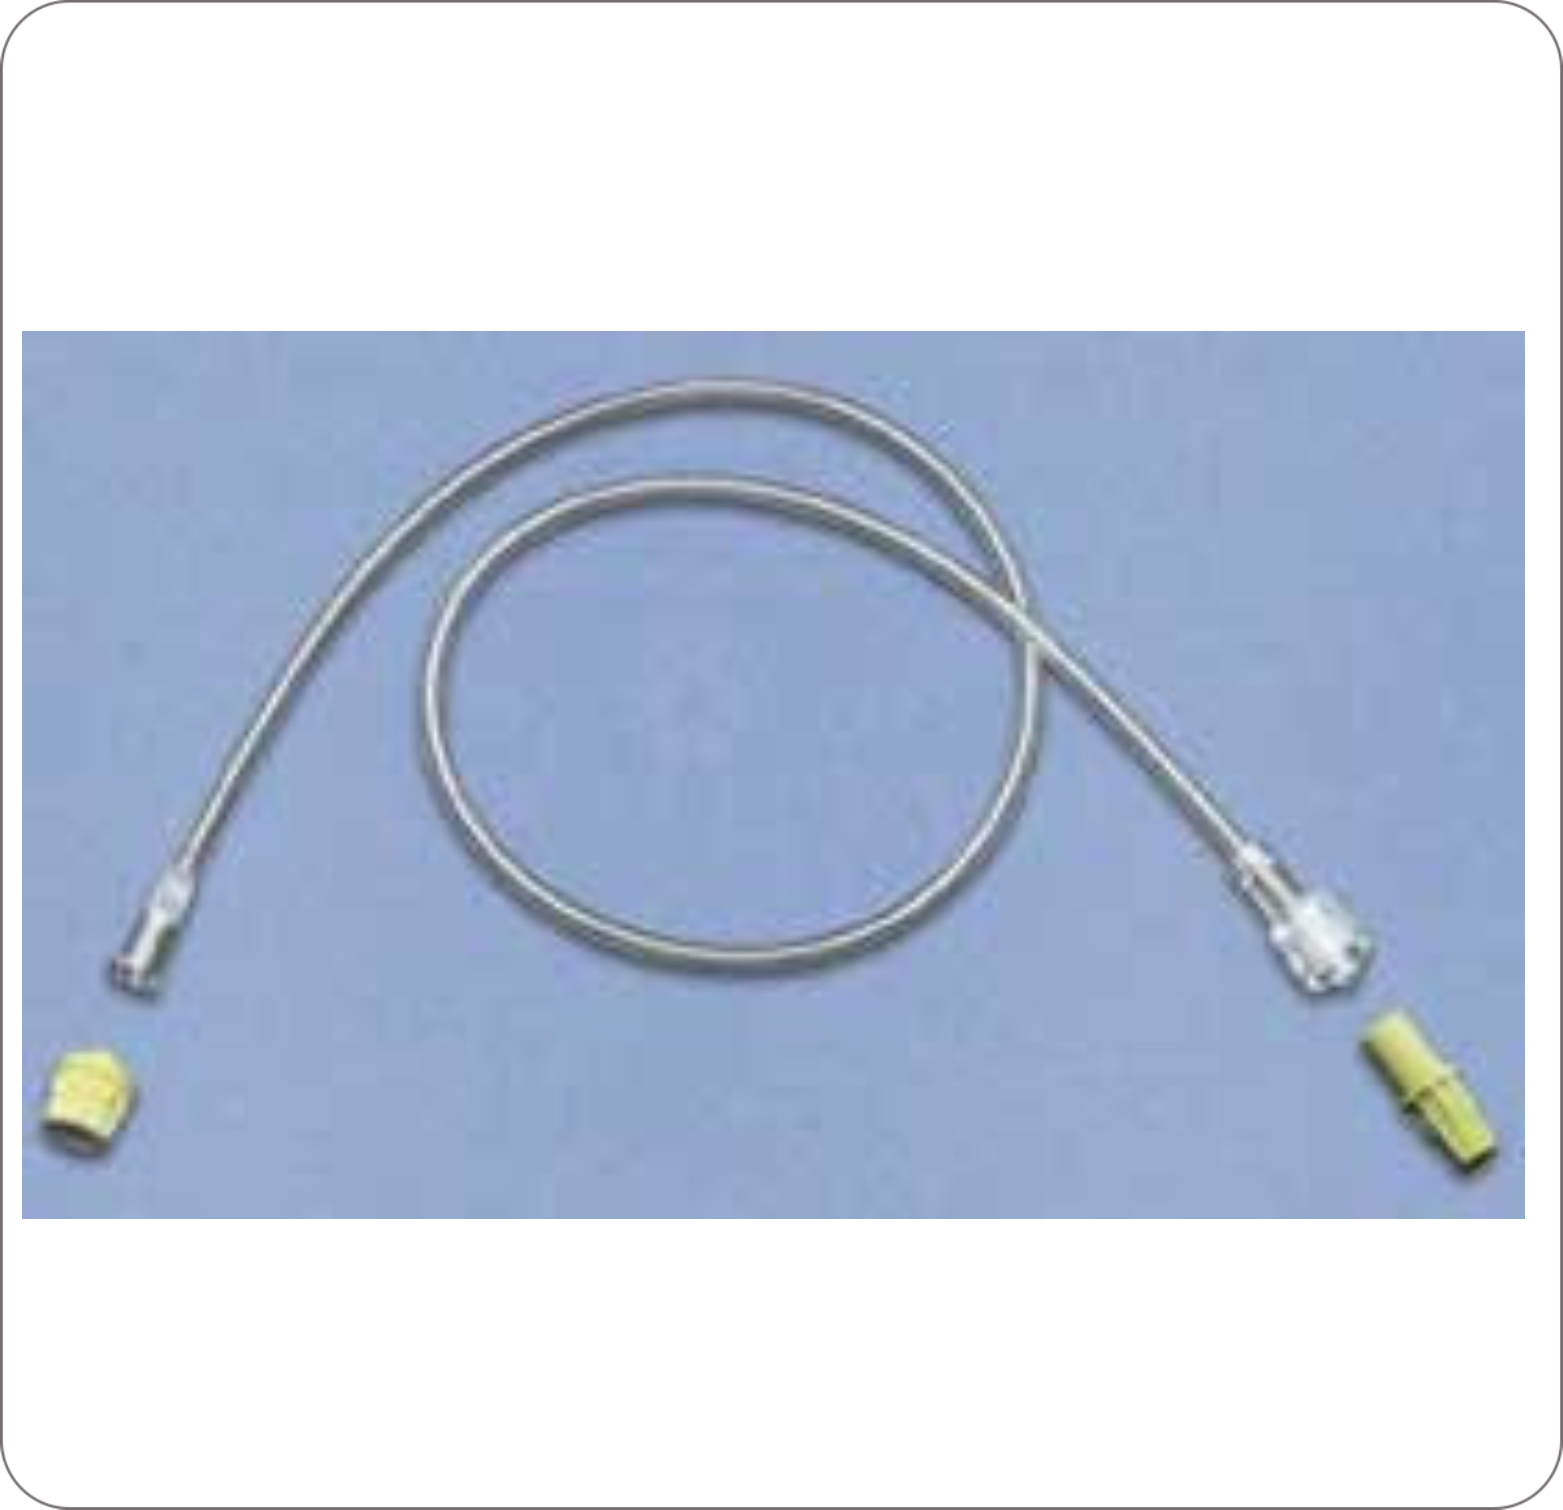 Extension Set 10-1120 for Anesthesia 20""